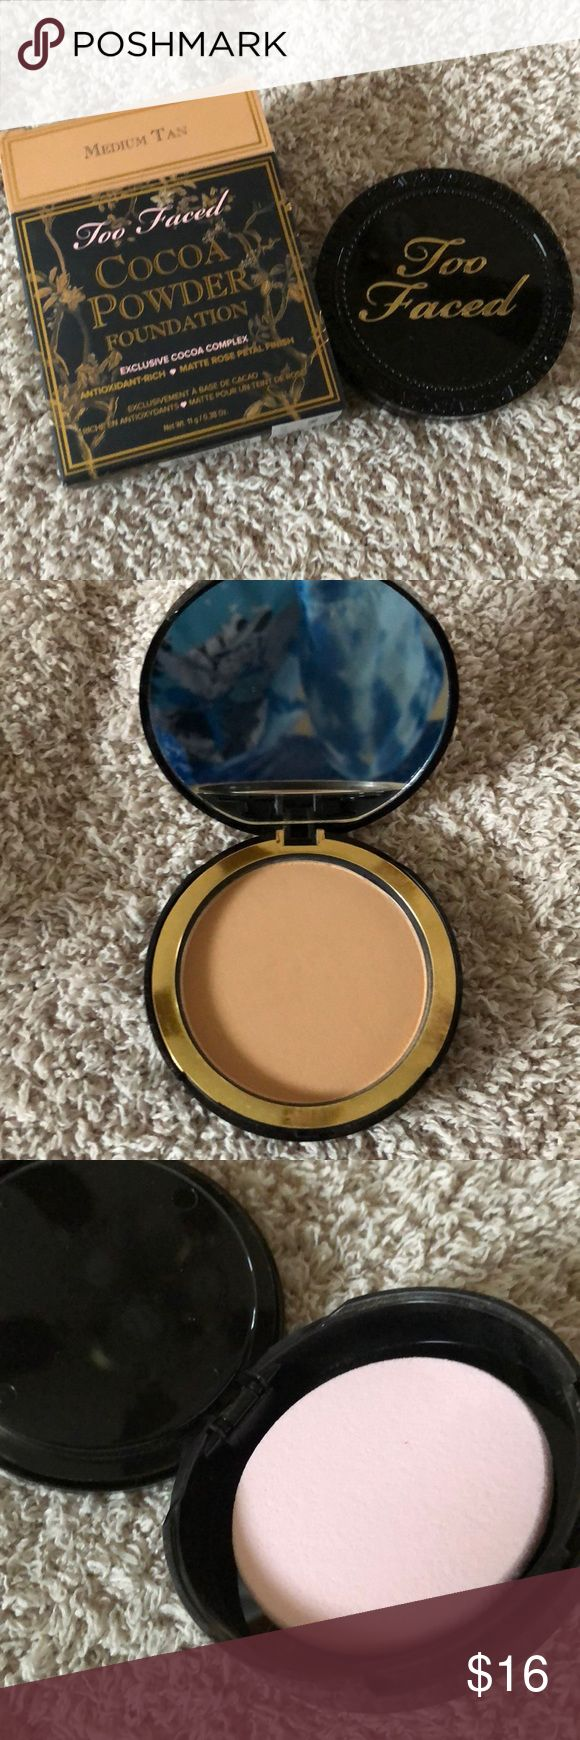 Too Faced Cocoa Powder Foundation Too Faced Cocoa Powder Foundation. Color is medium tan. Brand new. Too Faced Makeup Face Powder